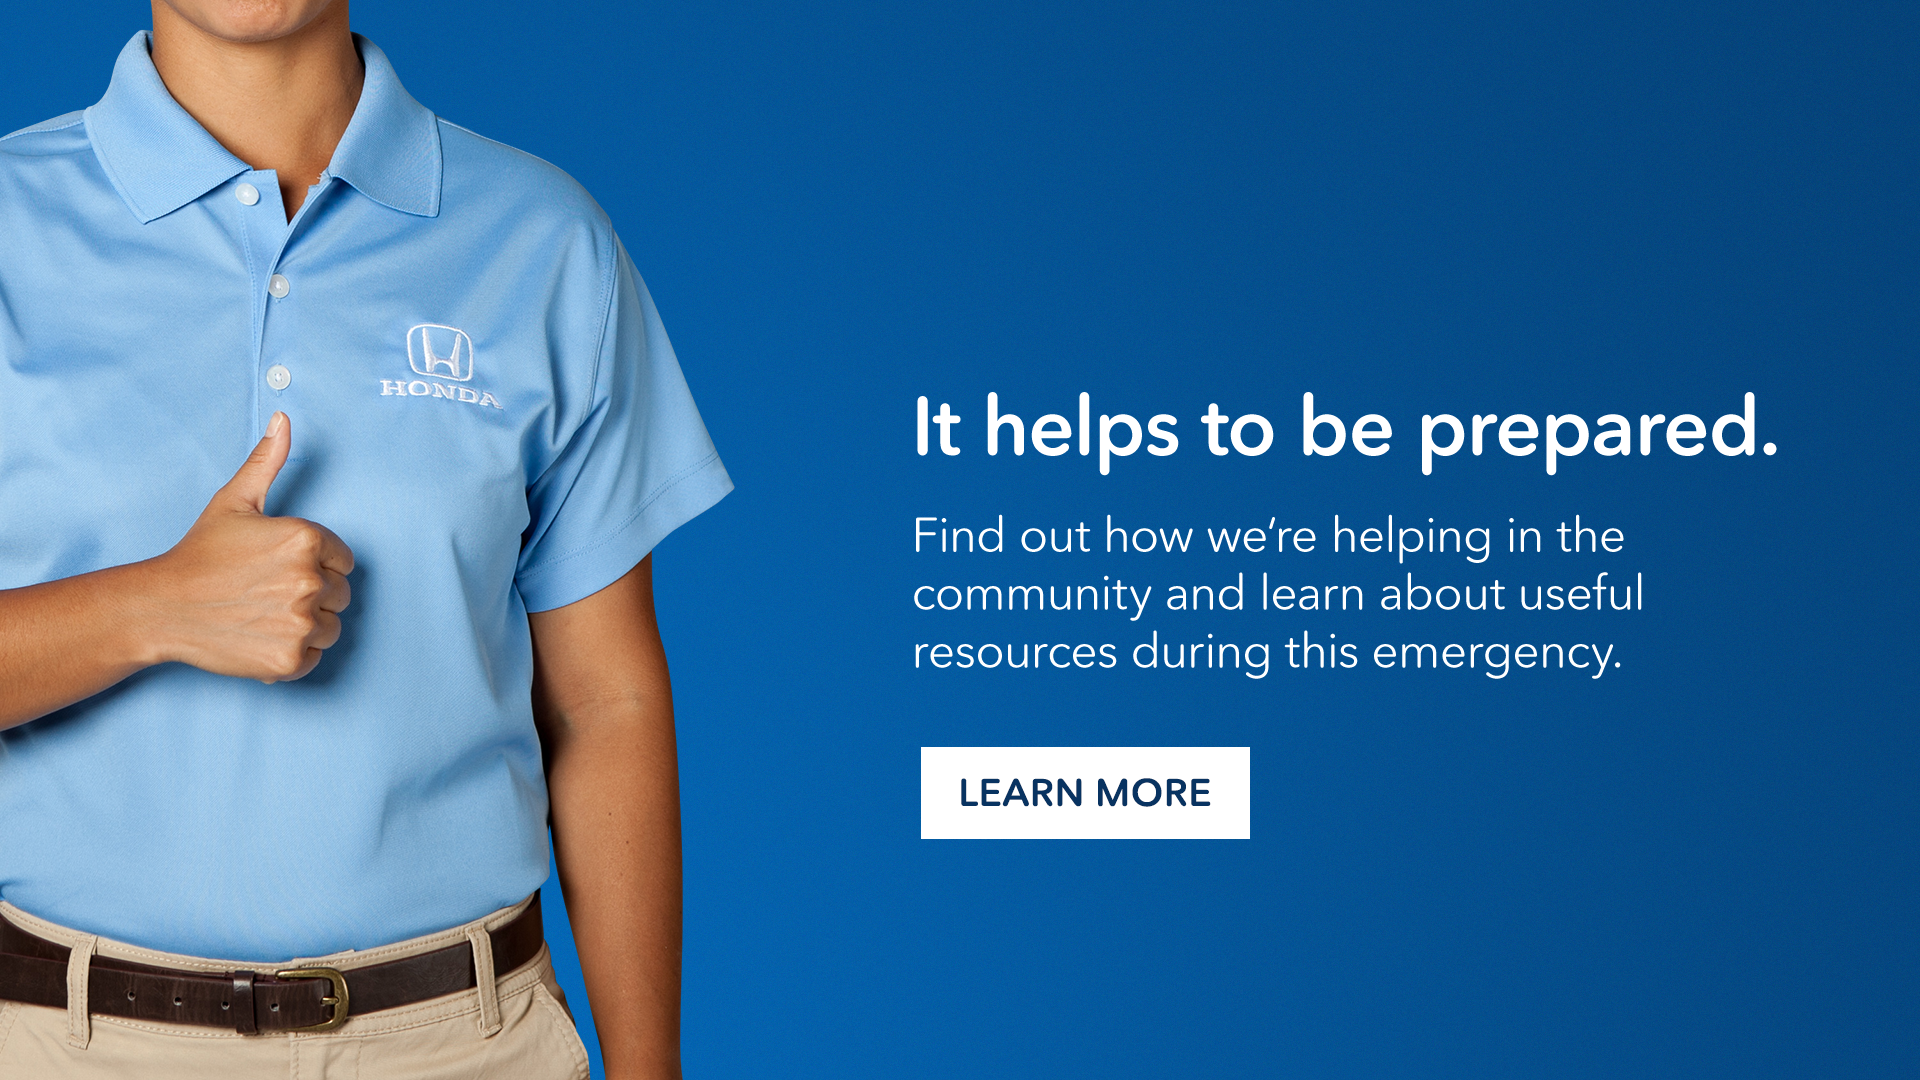 Find out how we're helping in the community during this emergency